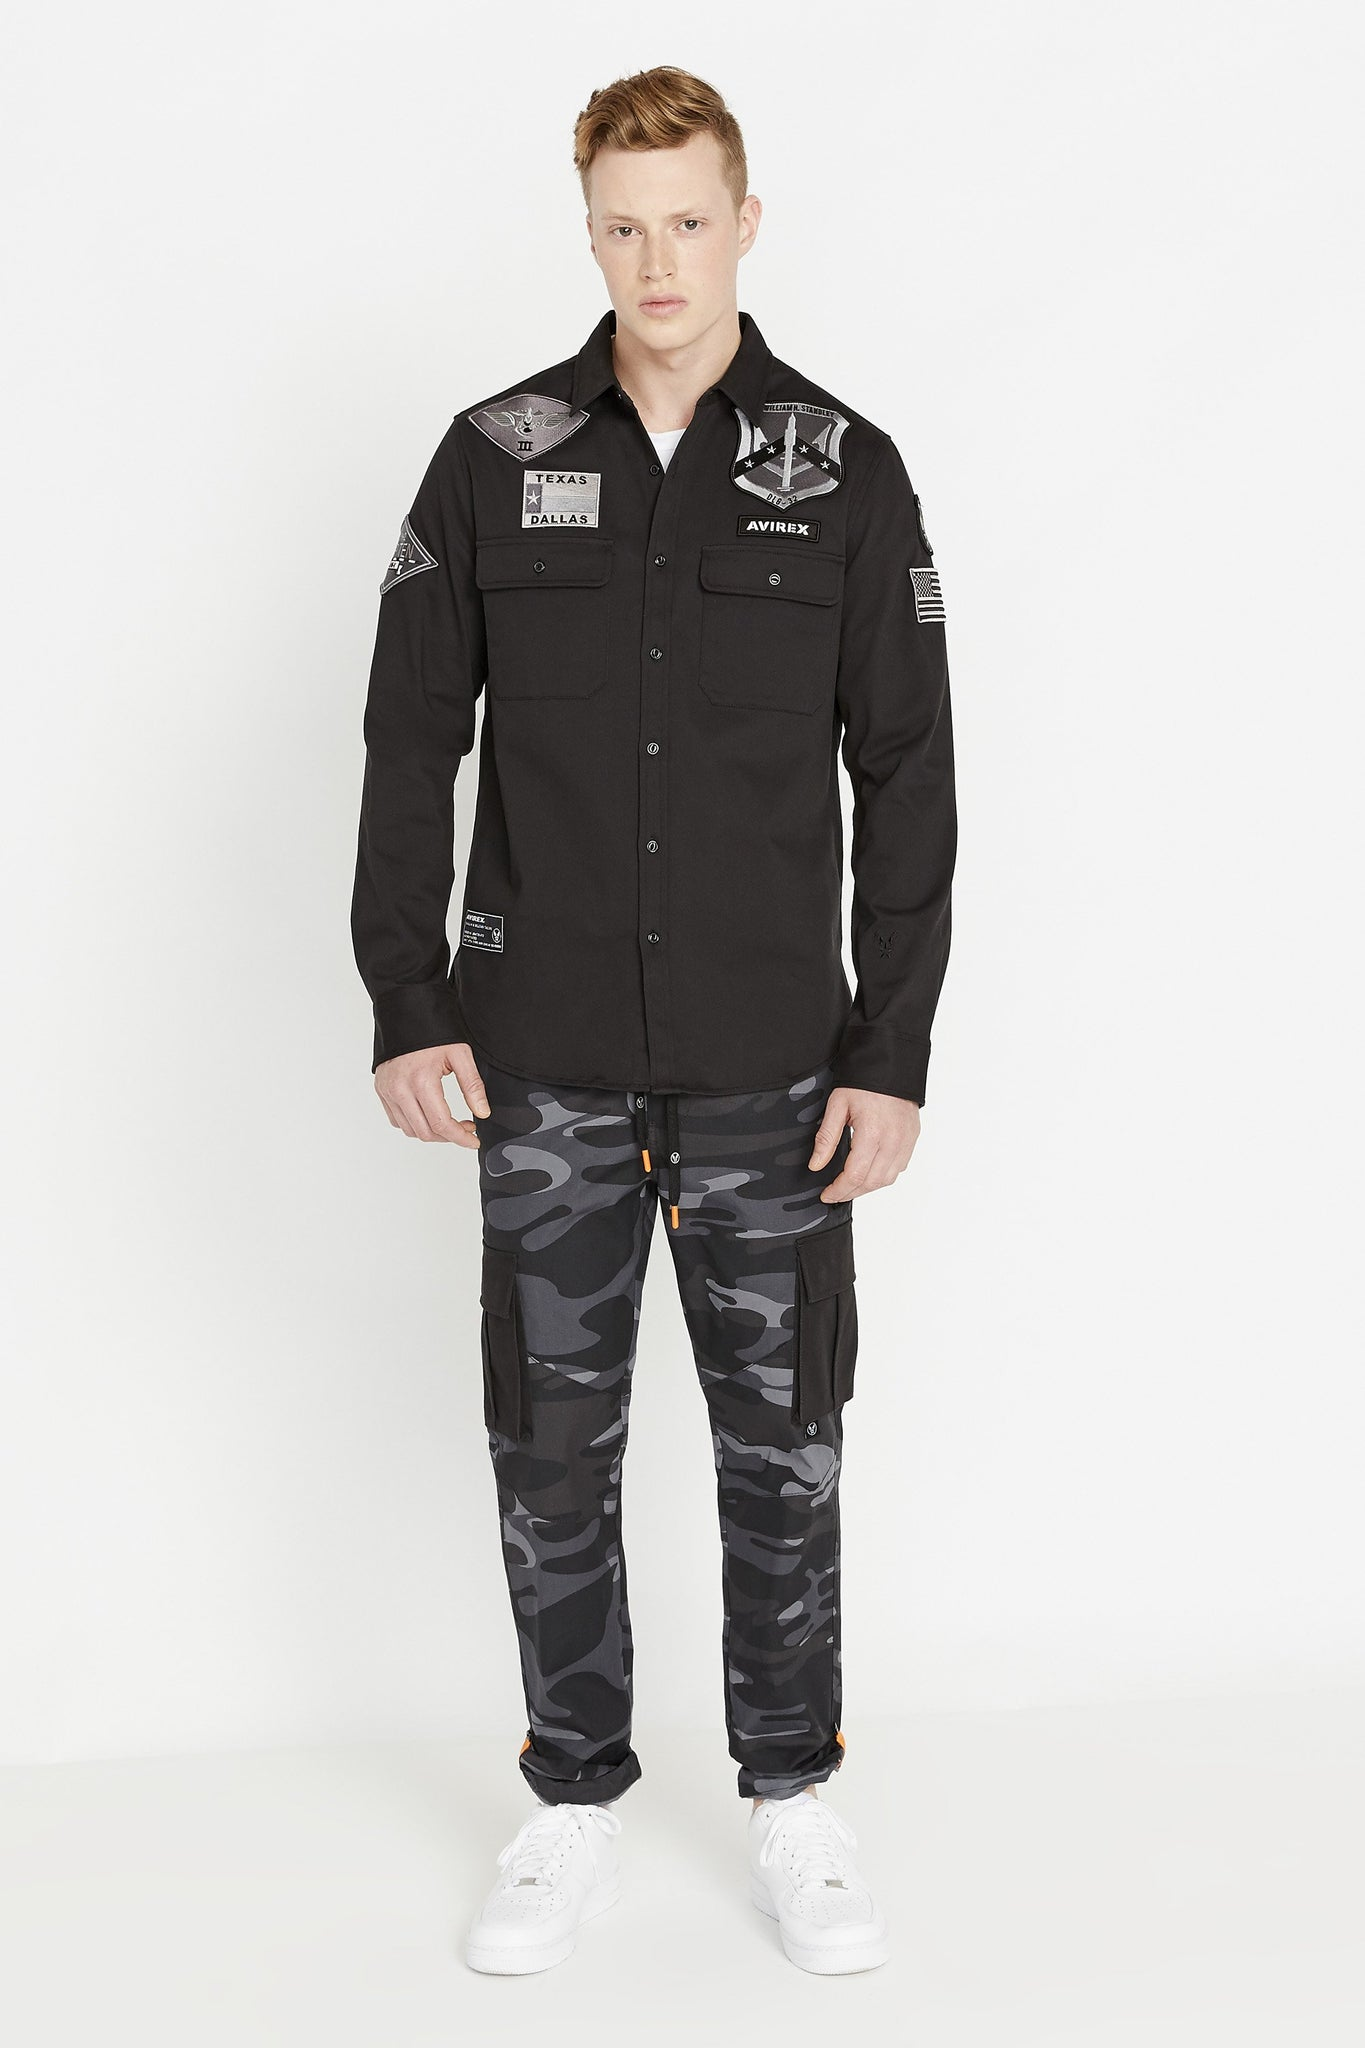 Full view of men wearing a black long sleeve shirt with two front button-flap pockets multi-patch on the chest and arms and black camo print pants